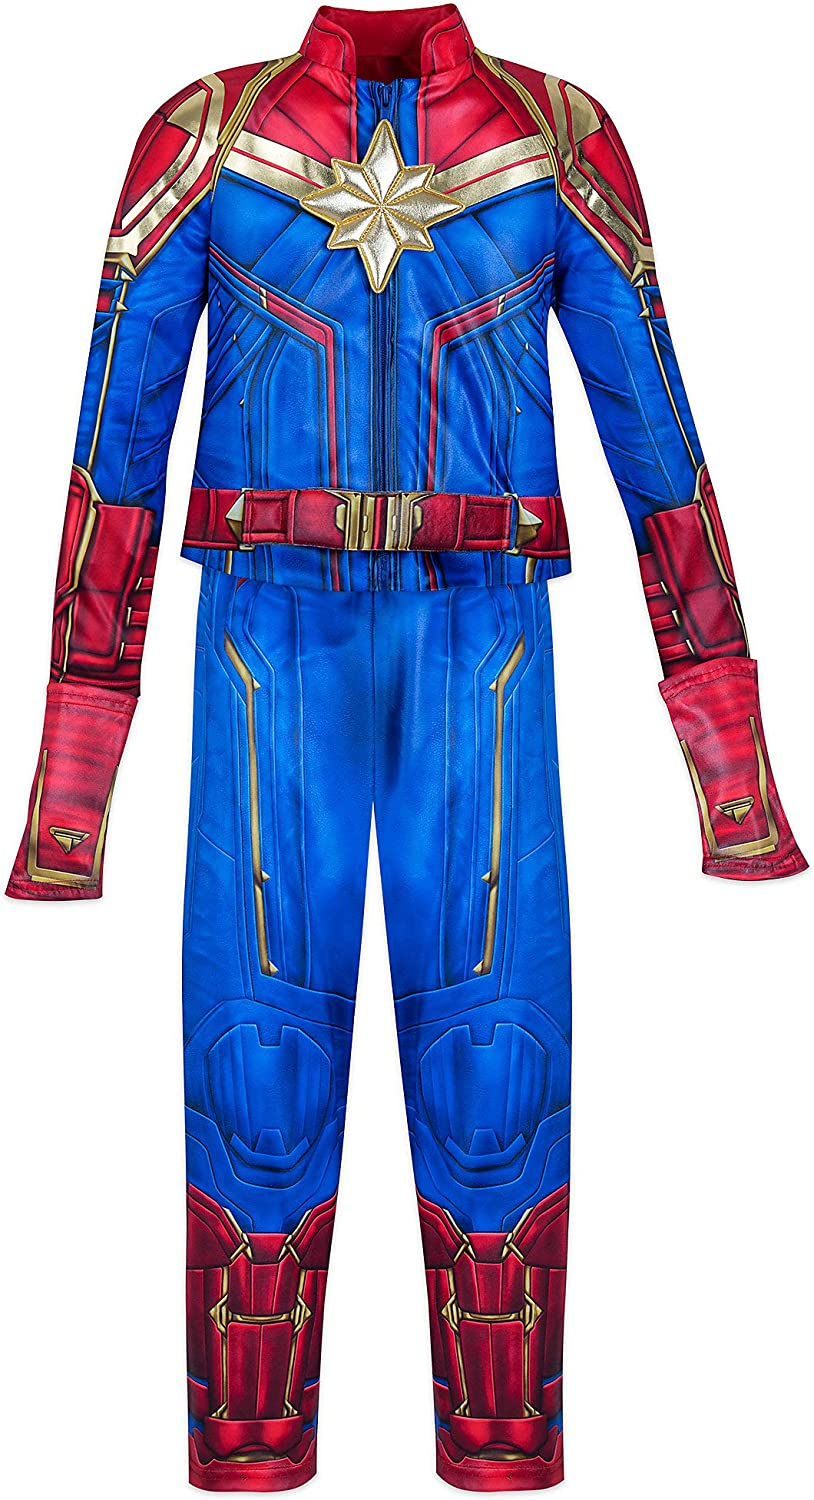 Amazon Com Marvel Captain Costume For Kids Size 7 8 Multi Clothing From captain america and spiderman to hulk and wolverine, we have what you're looking for. marvel captain costume for kids size 7 8 multi